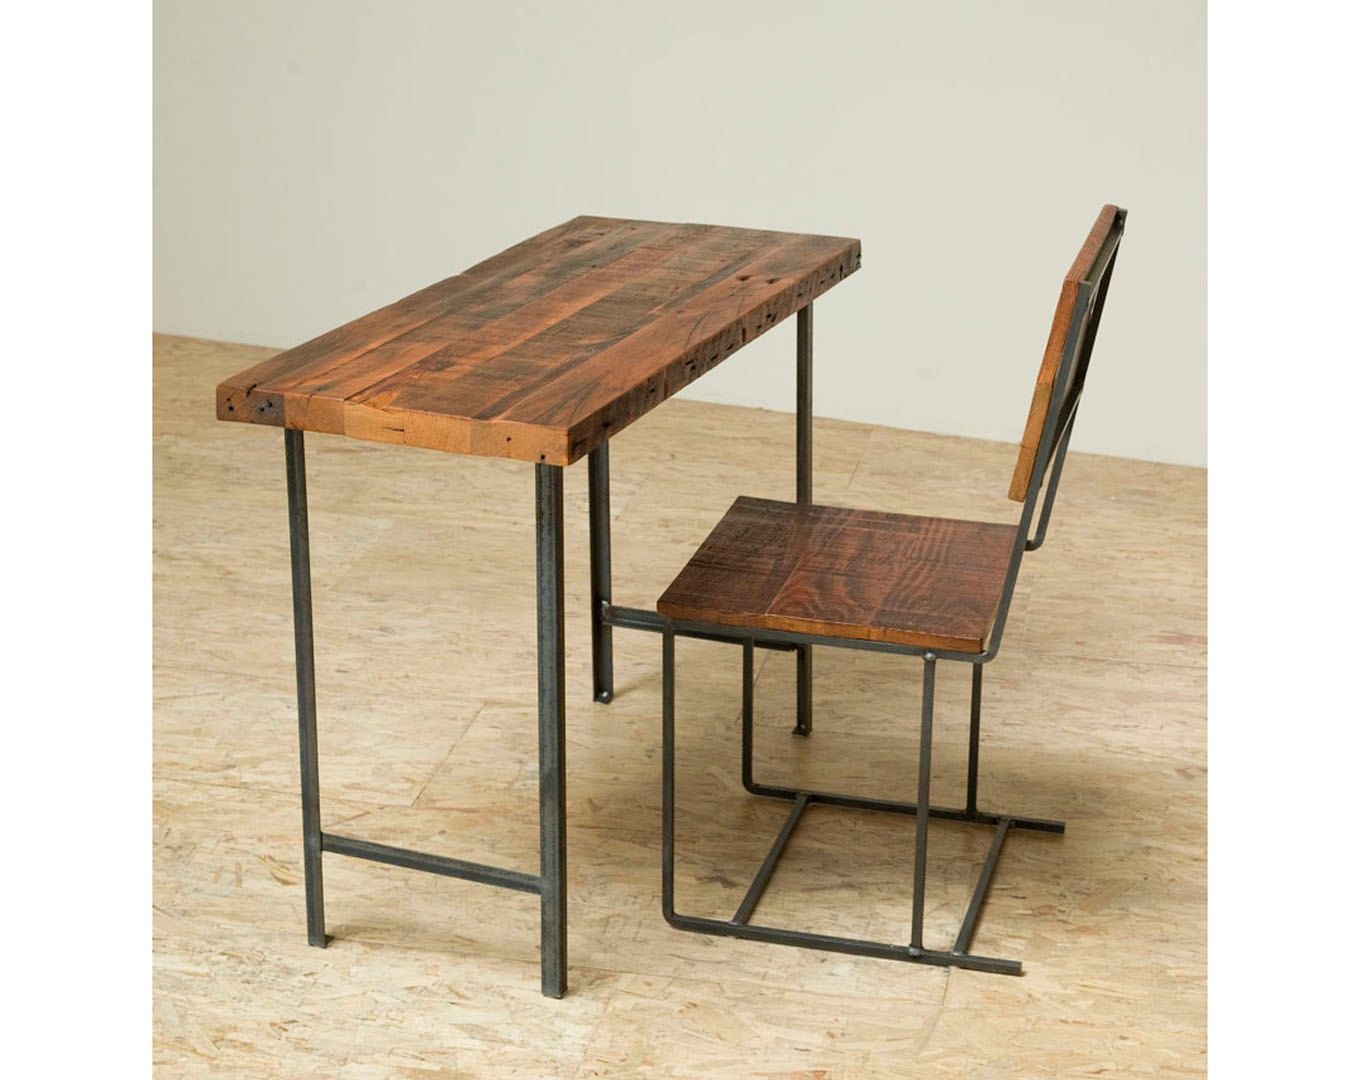 Compact Desk Or Console Table   Reclaimed Wood And Iron. $650.00, Via Etsy.